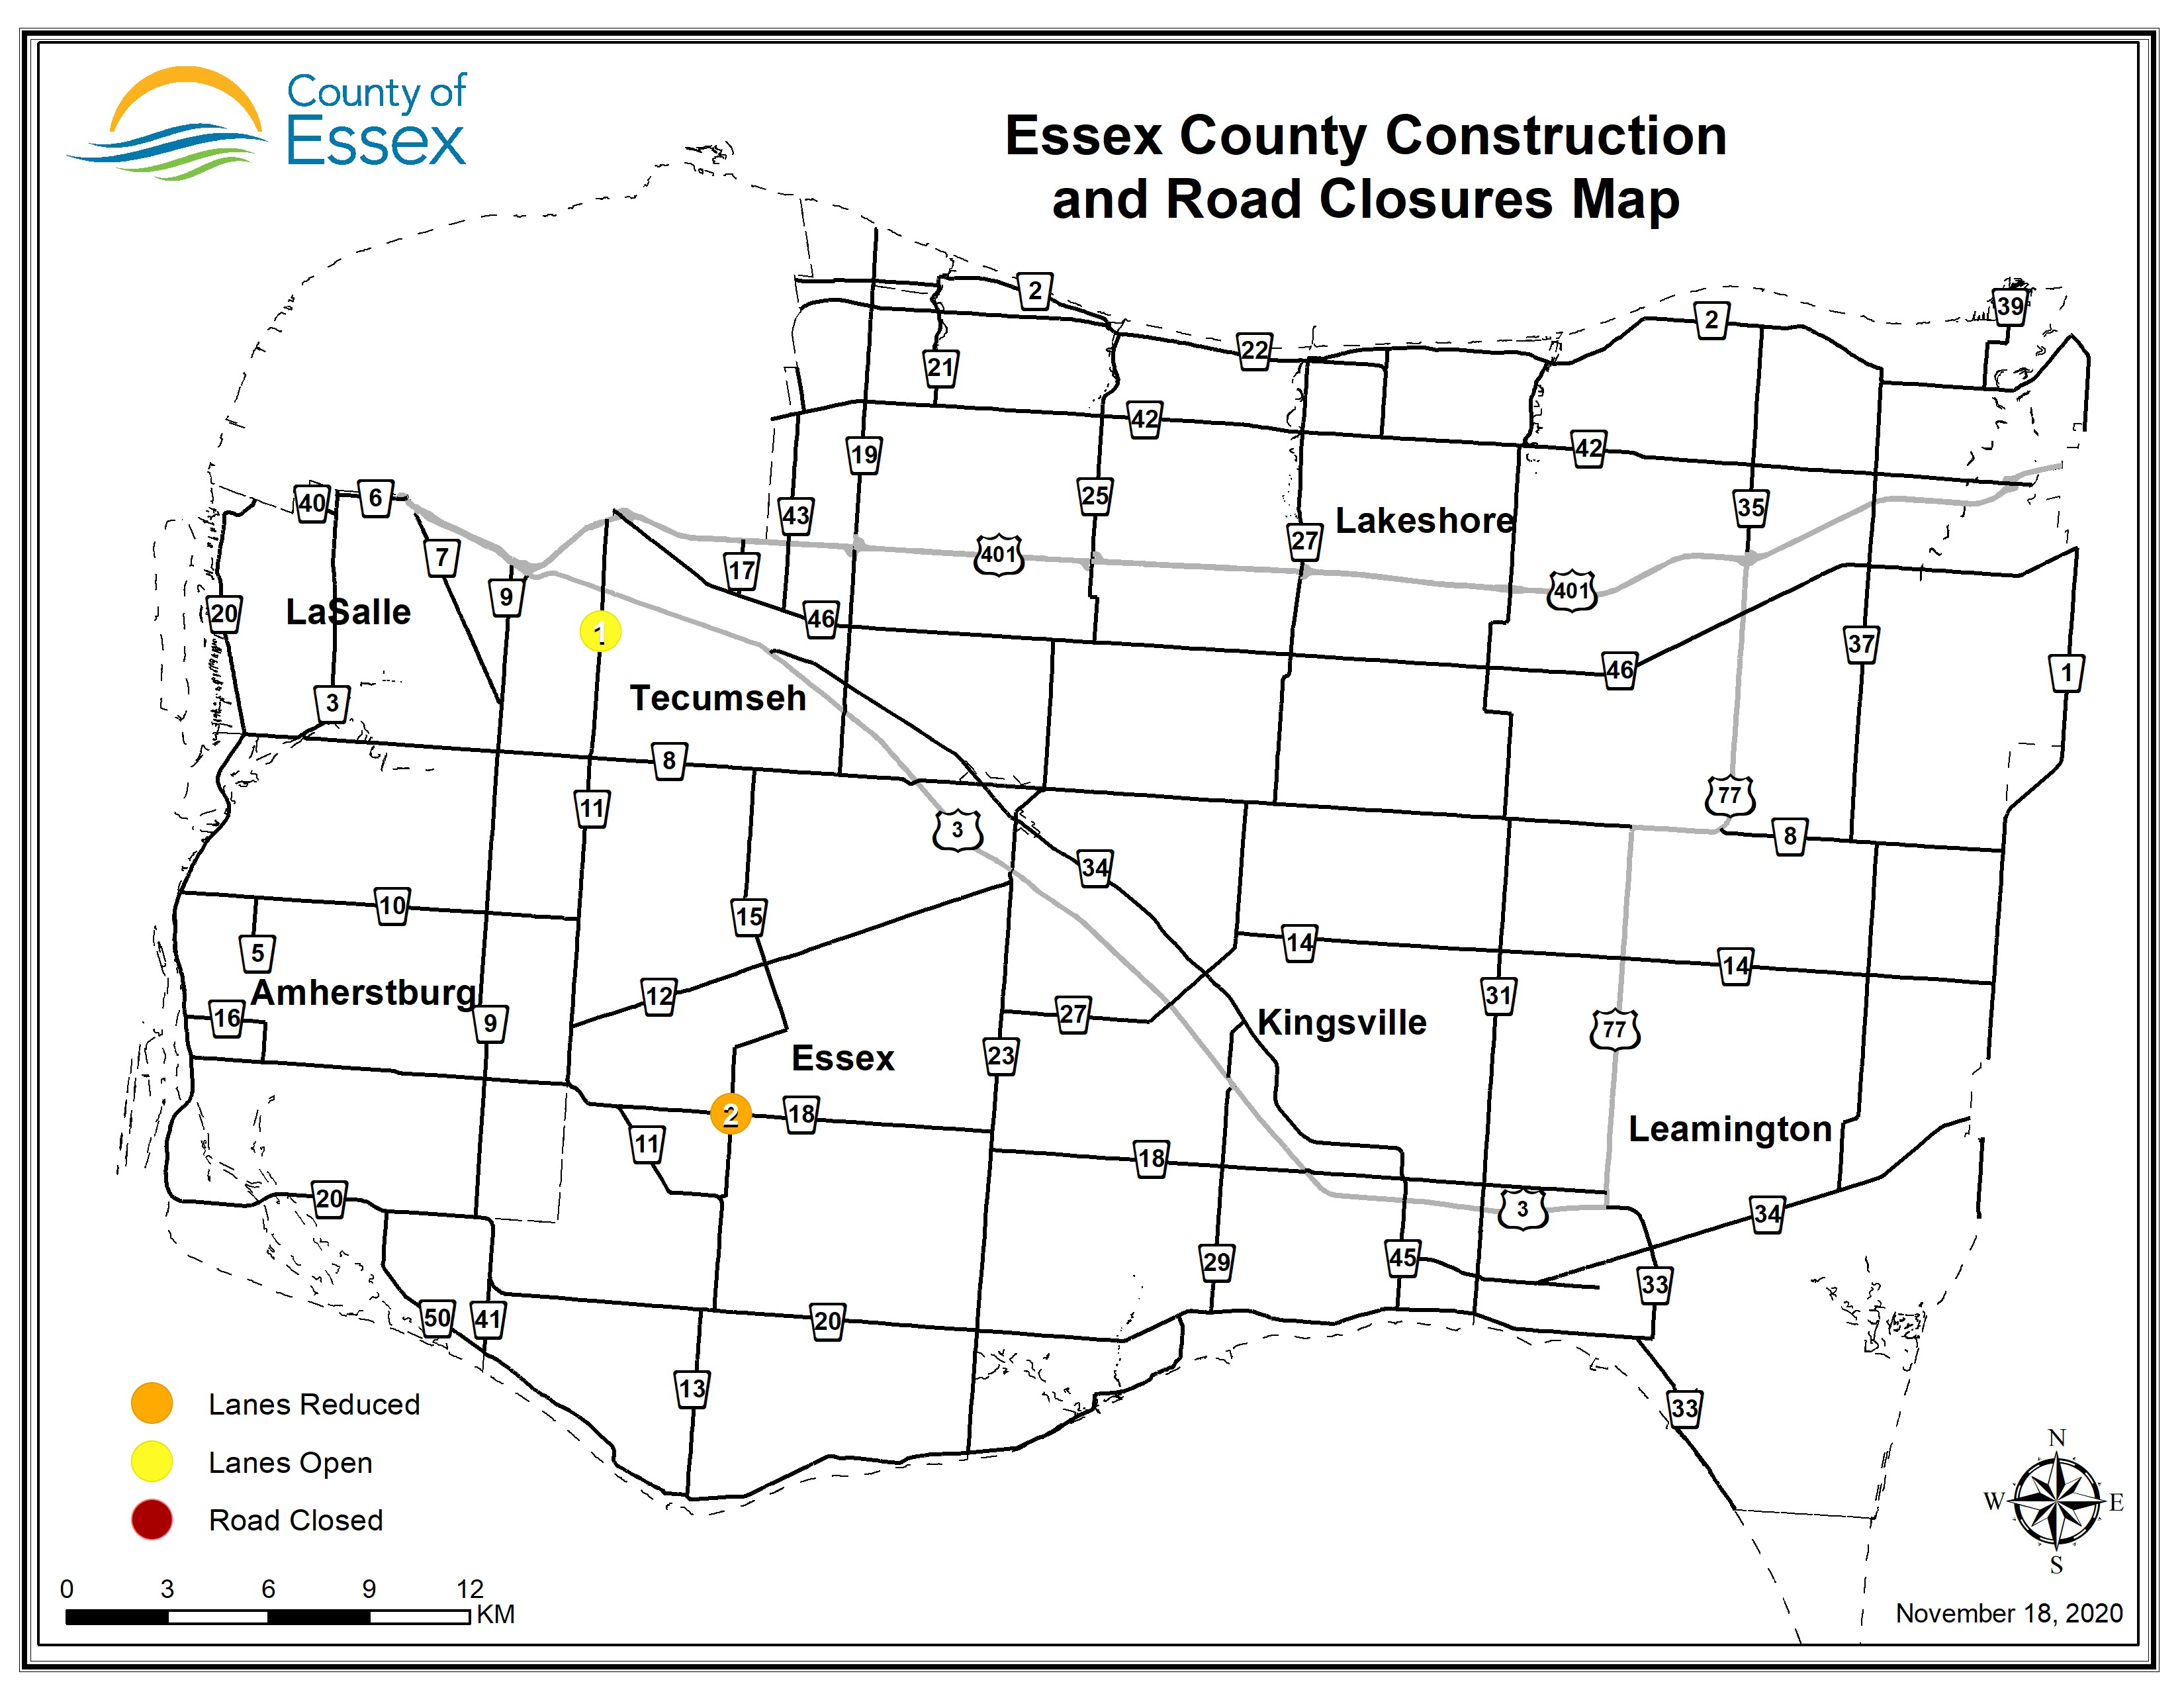 A map of Essex County showing road closures and lane restrictions for November 18, 2020.